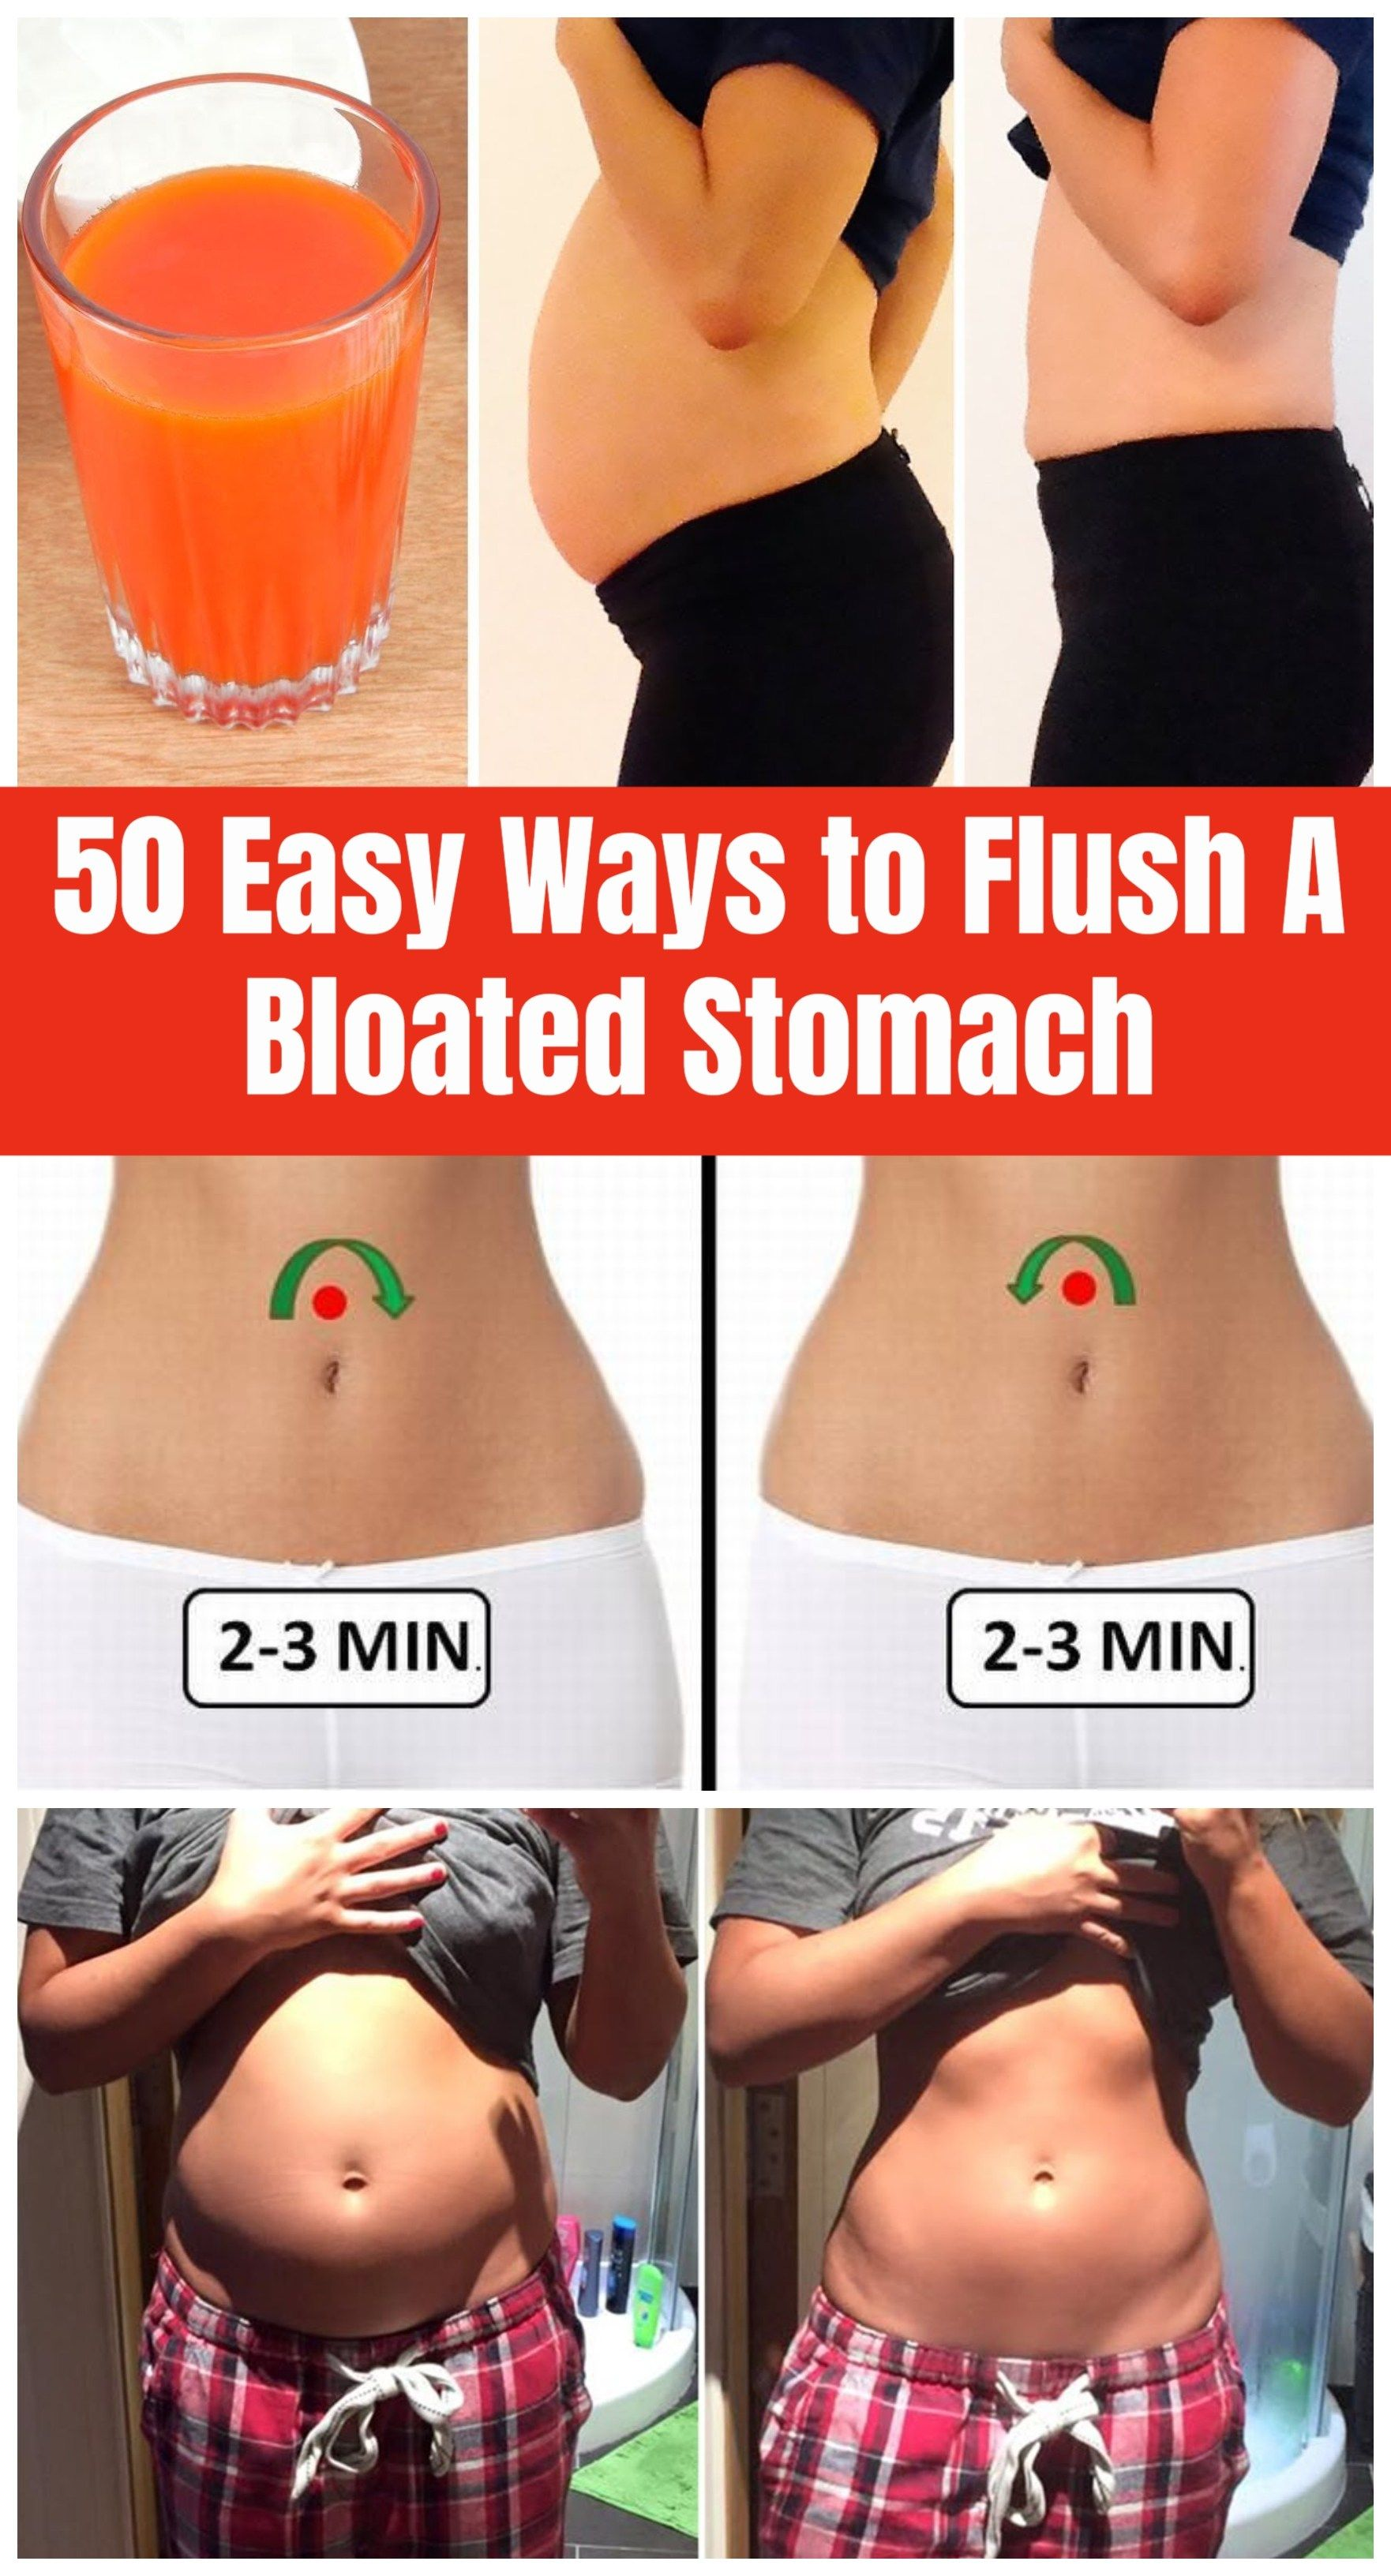 5c72148a4bf01a50da2c06f6bb3ccb31 - How To Get Rid Of Full Feeling In Stomach